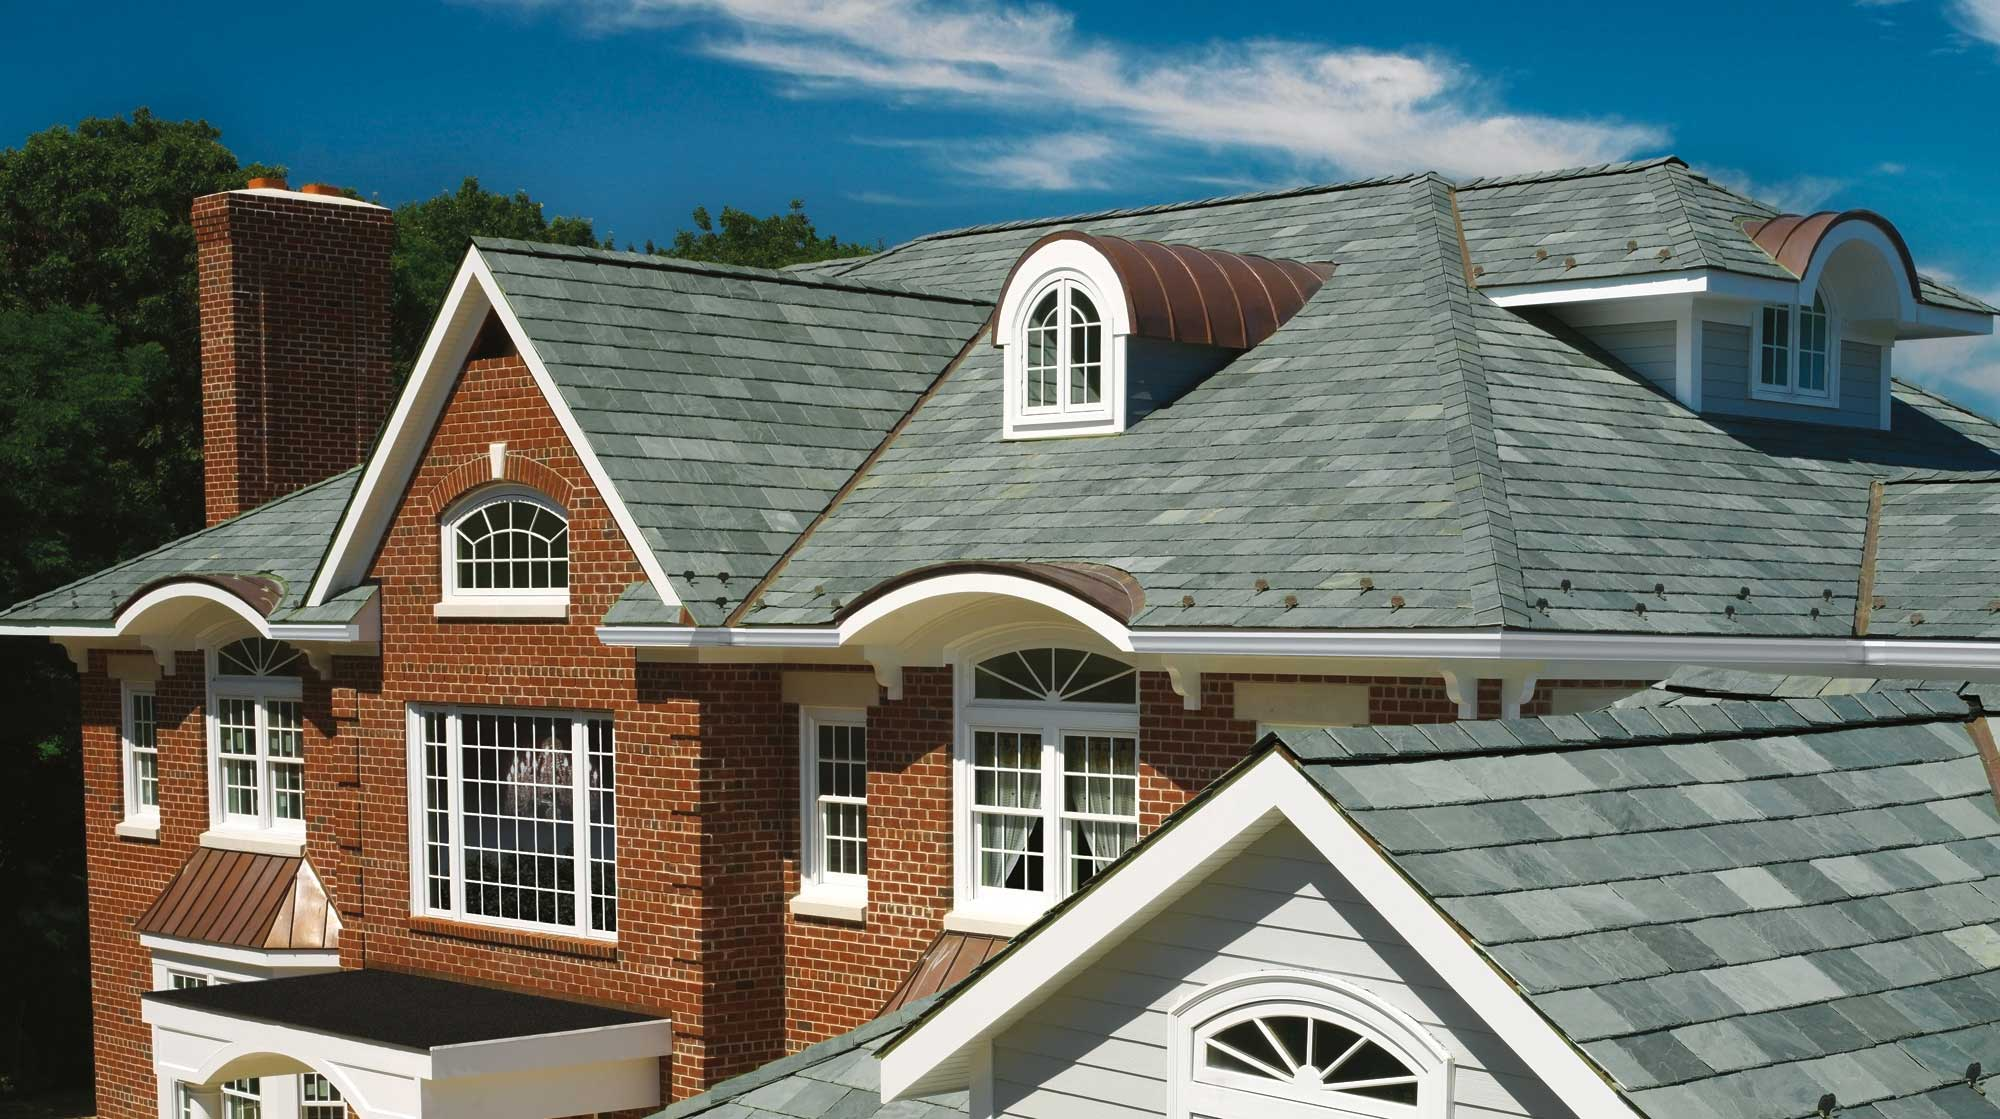 4 Reasons to Hire an Experienced Slate Roofing Contractor